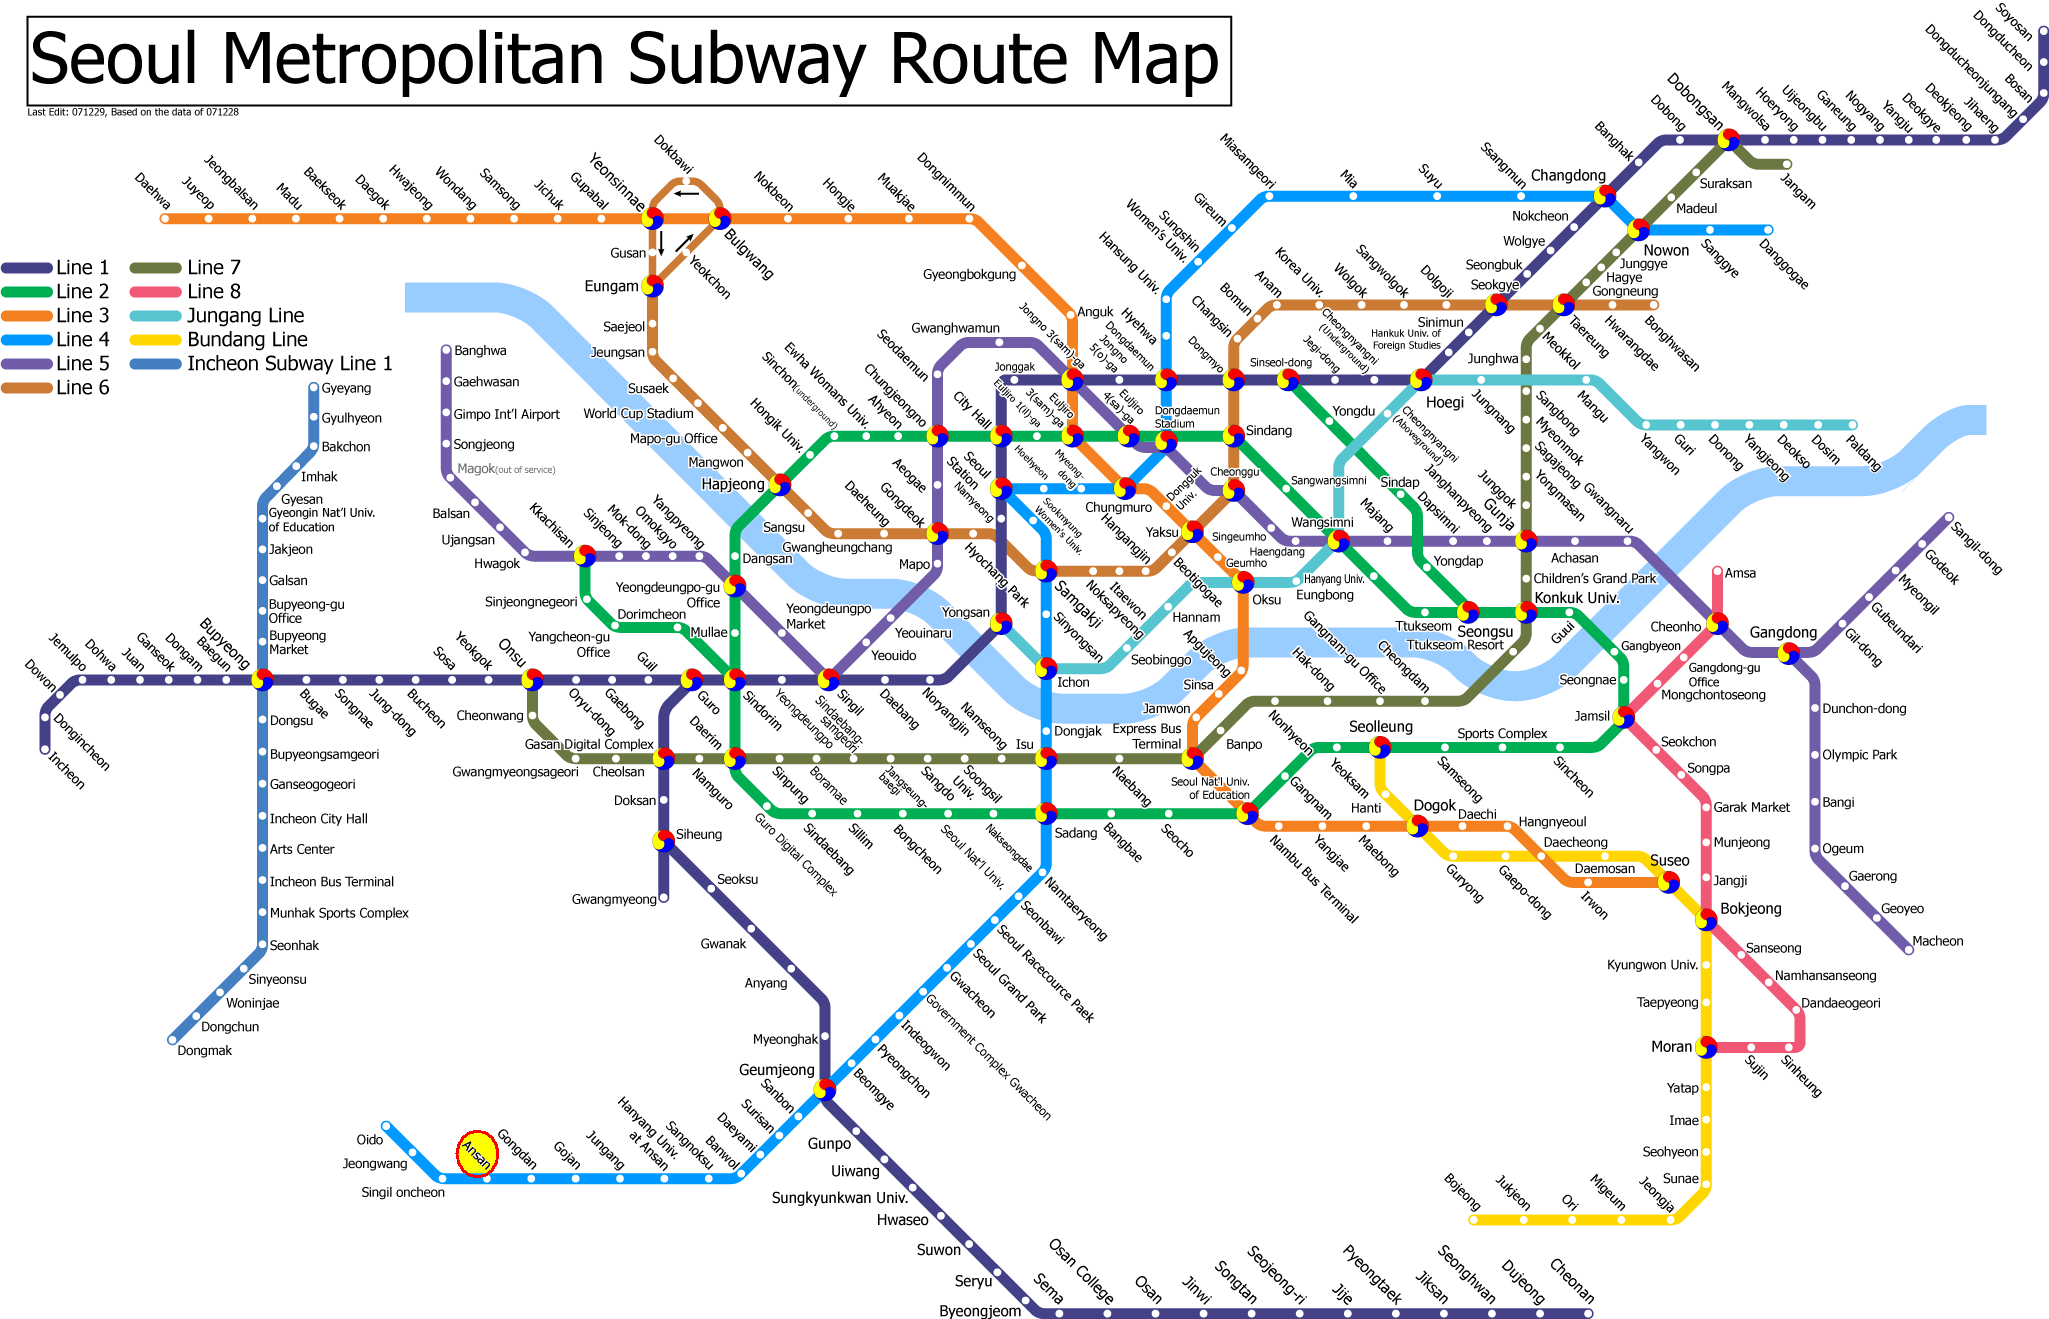 Seoul Subway Map Seoul mappery